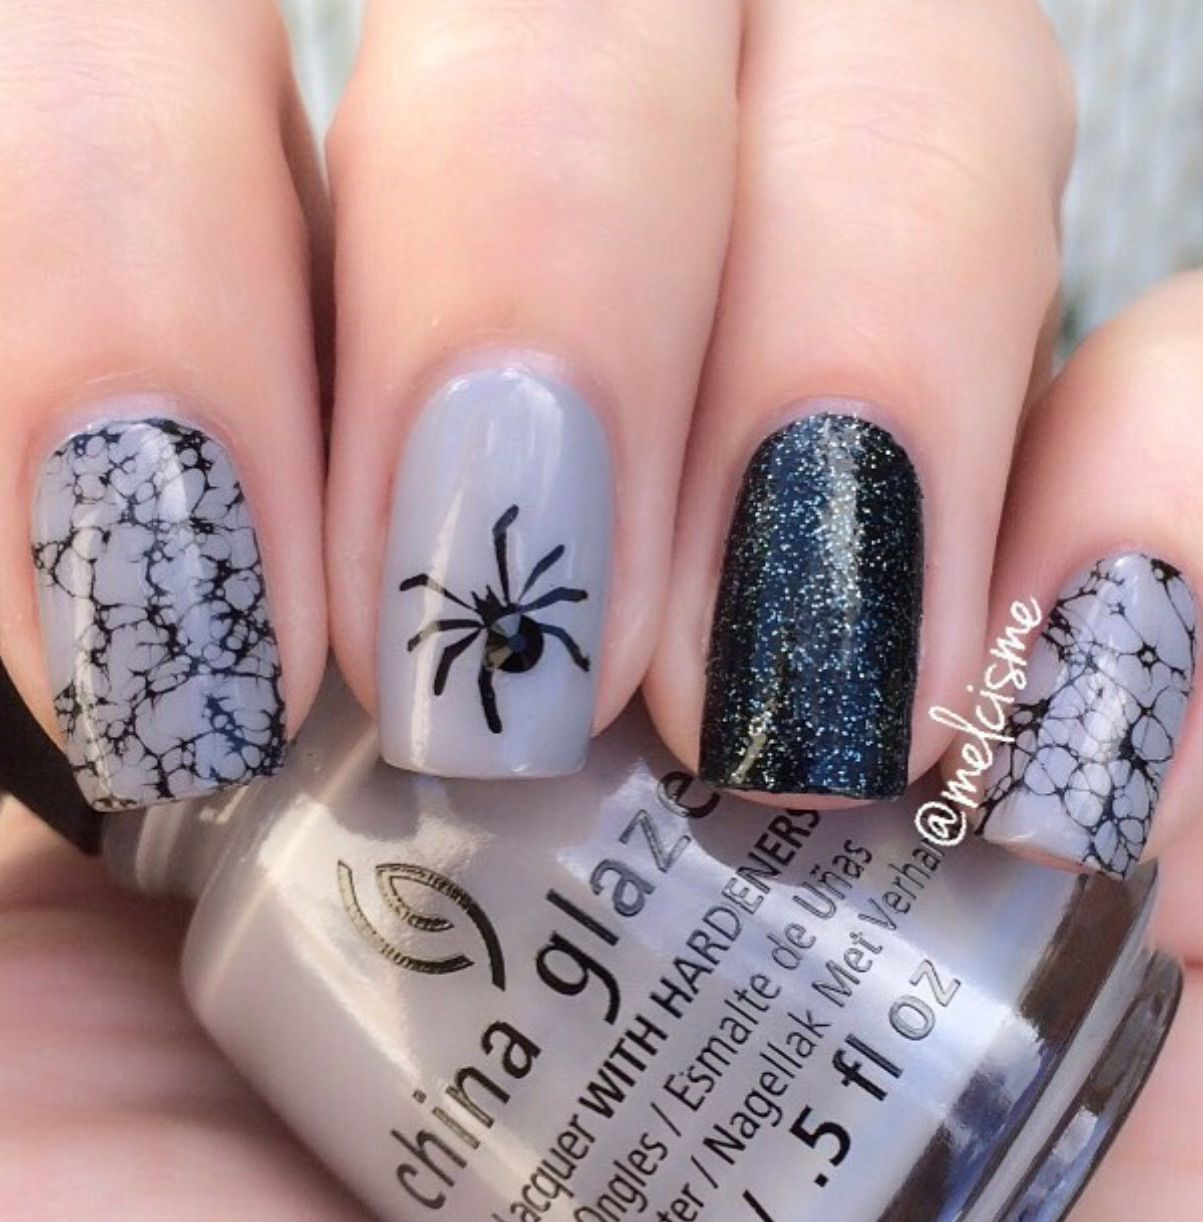 Halloween Nail Art Gray Black Spider With Crackle Polish Halloween Nails Nails Nail Art